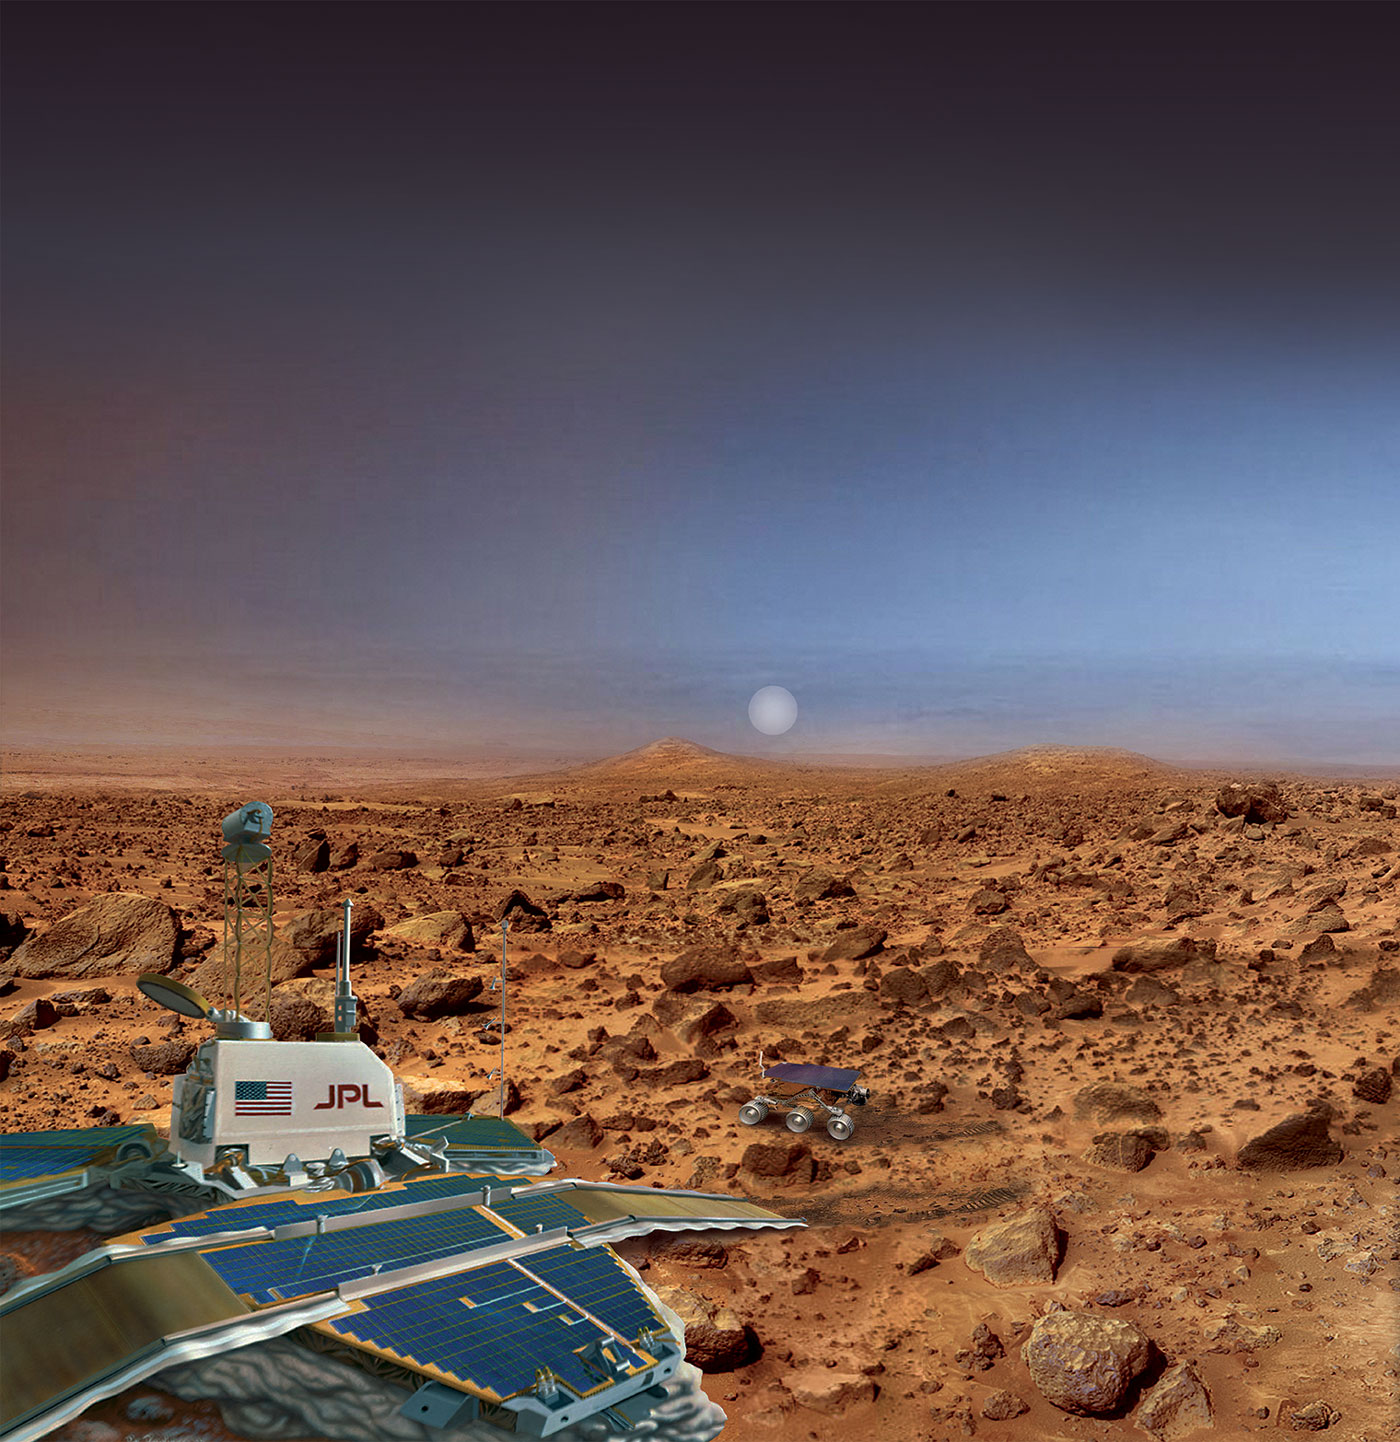 An artist's rendering of Mars Pathfinder, which consisted of a lander and the first-ever robotic rover on the surface of the Red Planet.